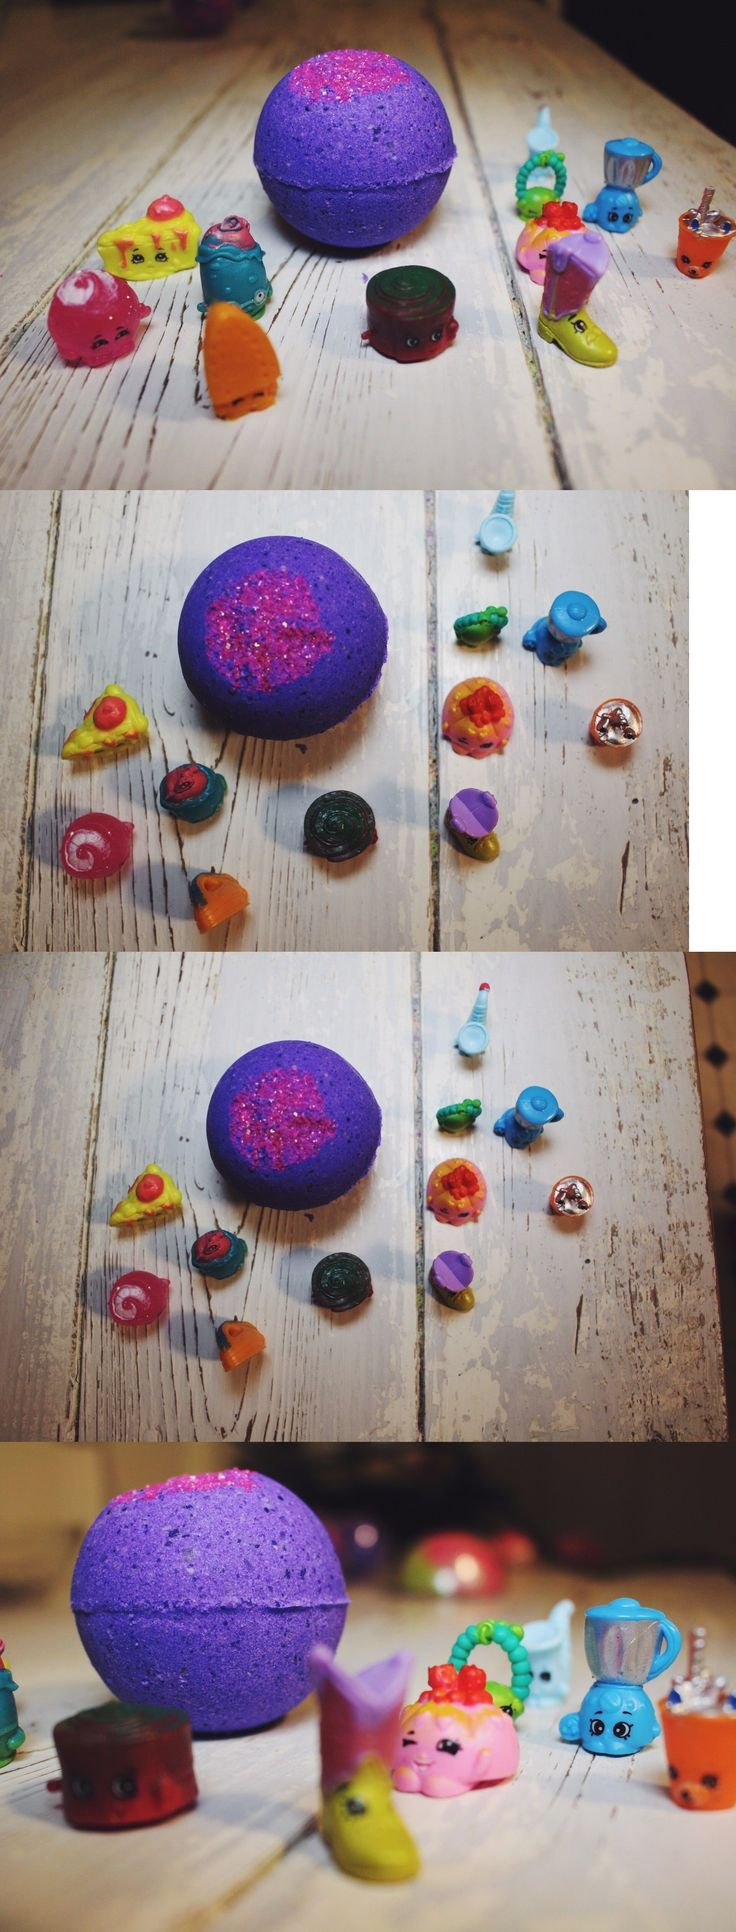 Bath Bombs and Fizzies: Wholesale Bulk Lot 10 Shopkins Surprise Xl Bath Bomb Bombs Ultra Lush -> BUY IT NOW ONLY: $30.0 on eBay!